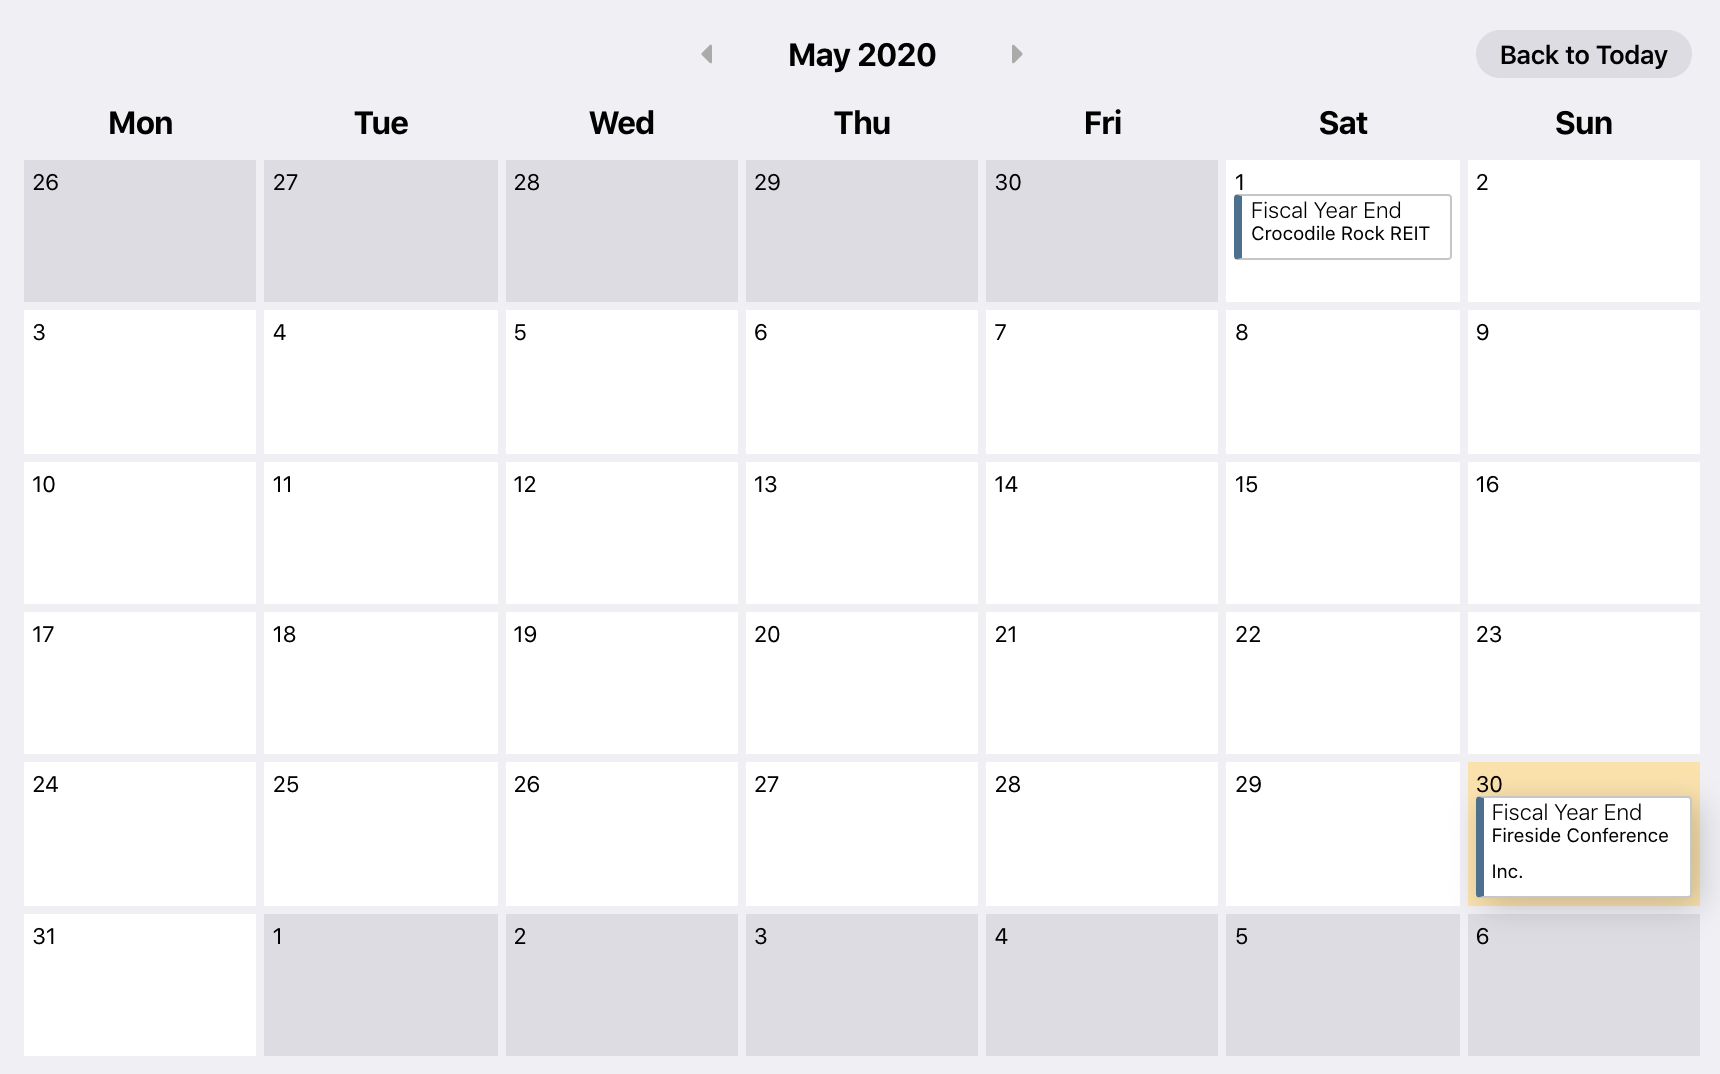 example compliance calendar with filters applied